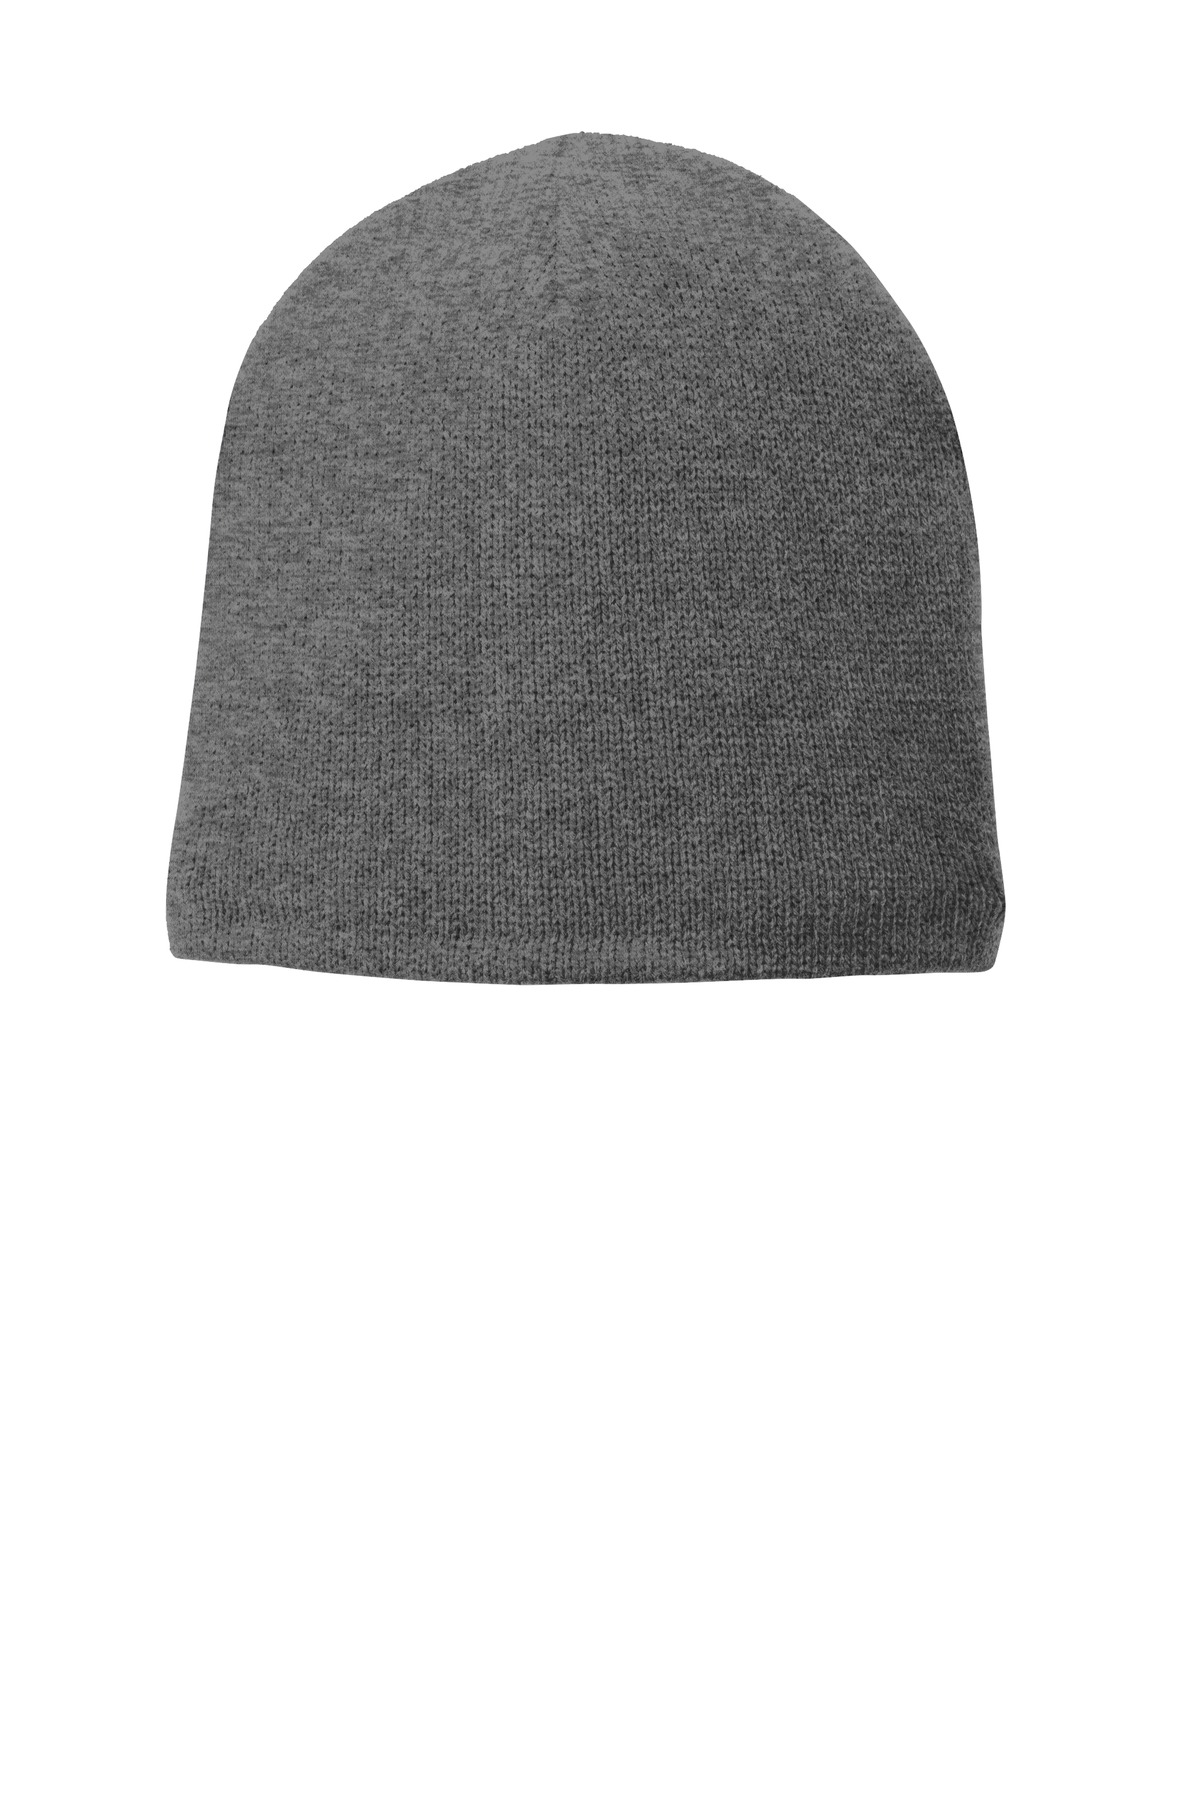 Fleecelined Beanie Cap Athletic Oxford. About this product. Picture 1 of 3   Picture 2 of 3 ... 5cfefcc25e2